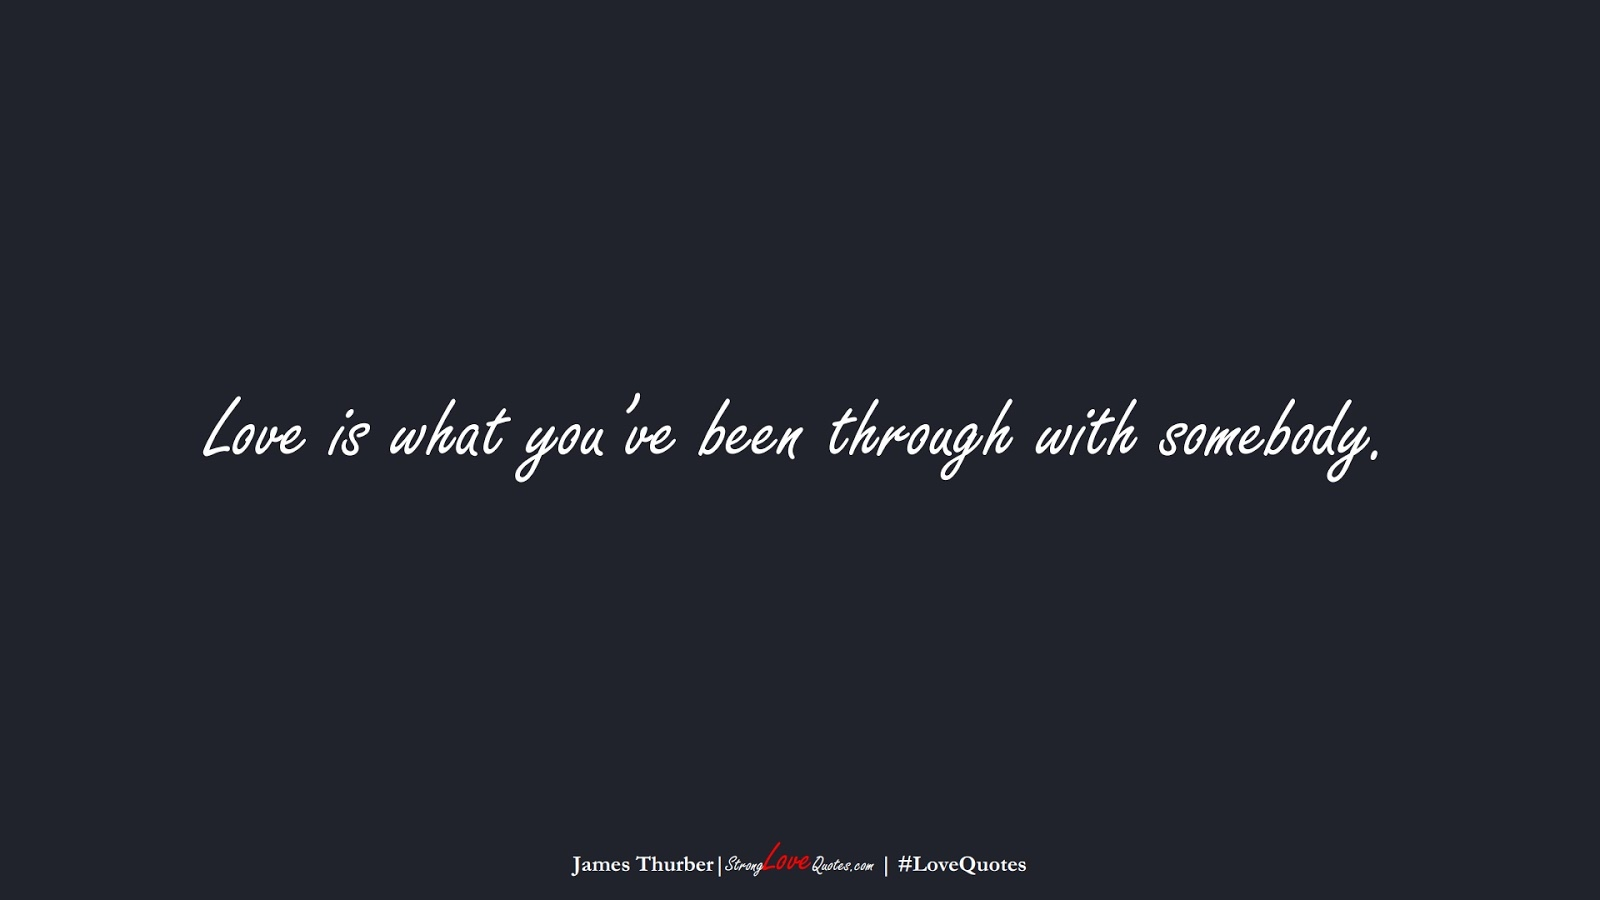 Love is what you've been through with somebody. (James Thurber);  #LoveQuotes